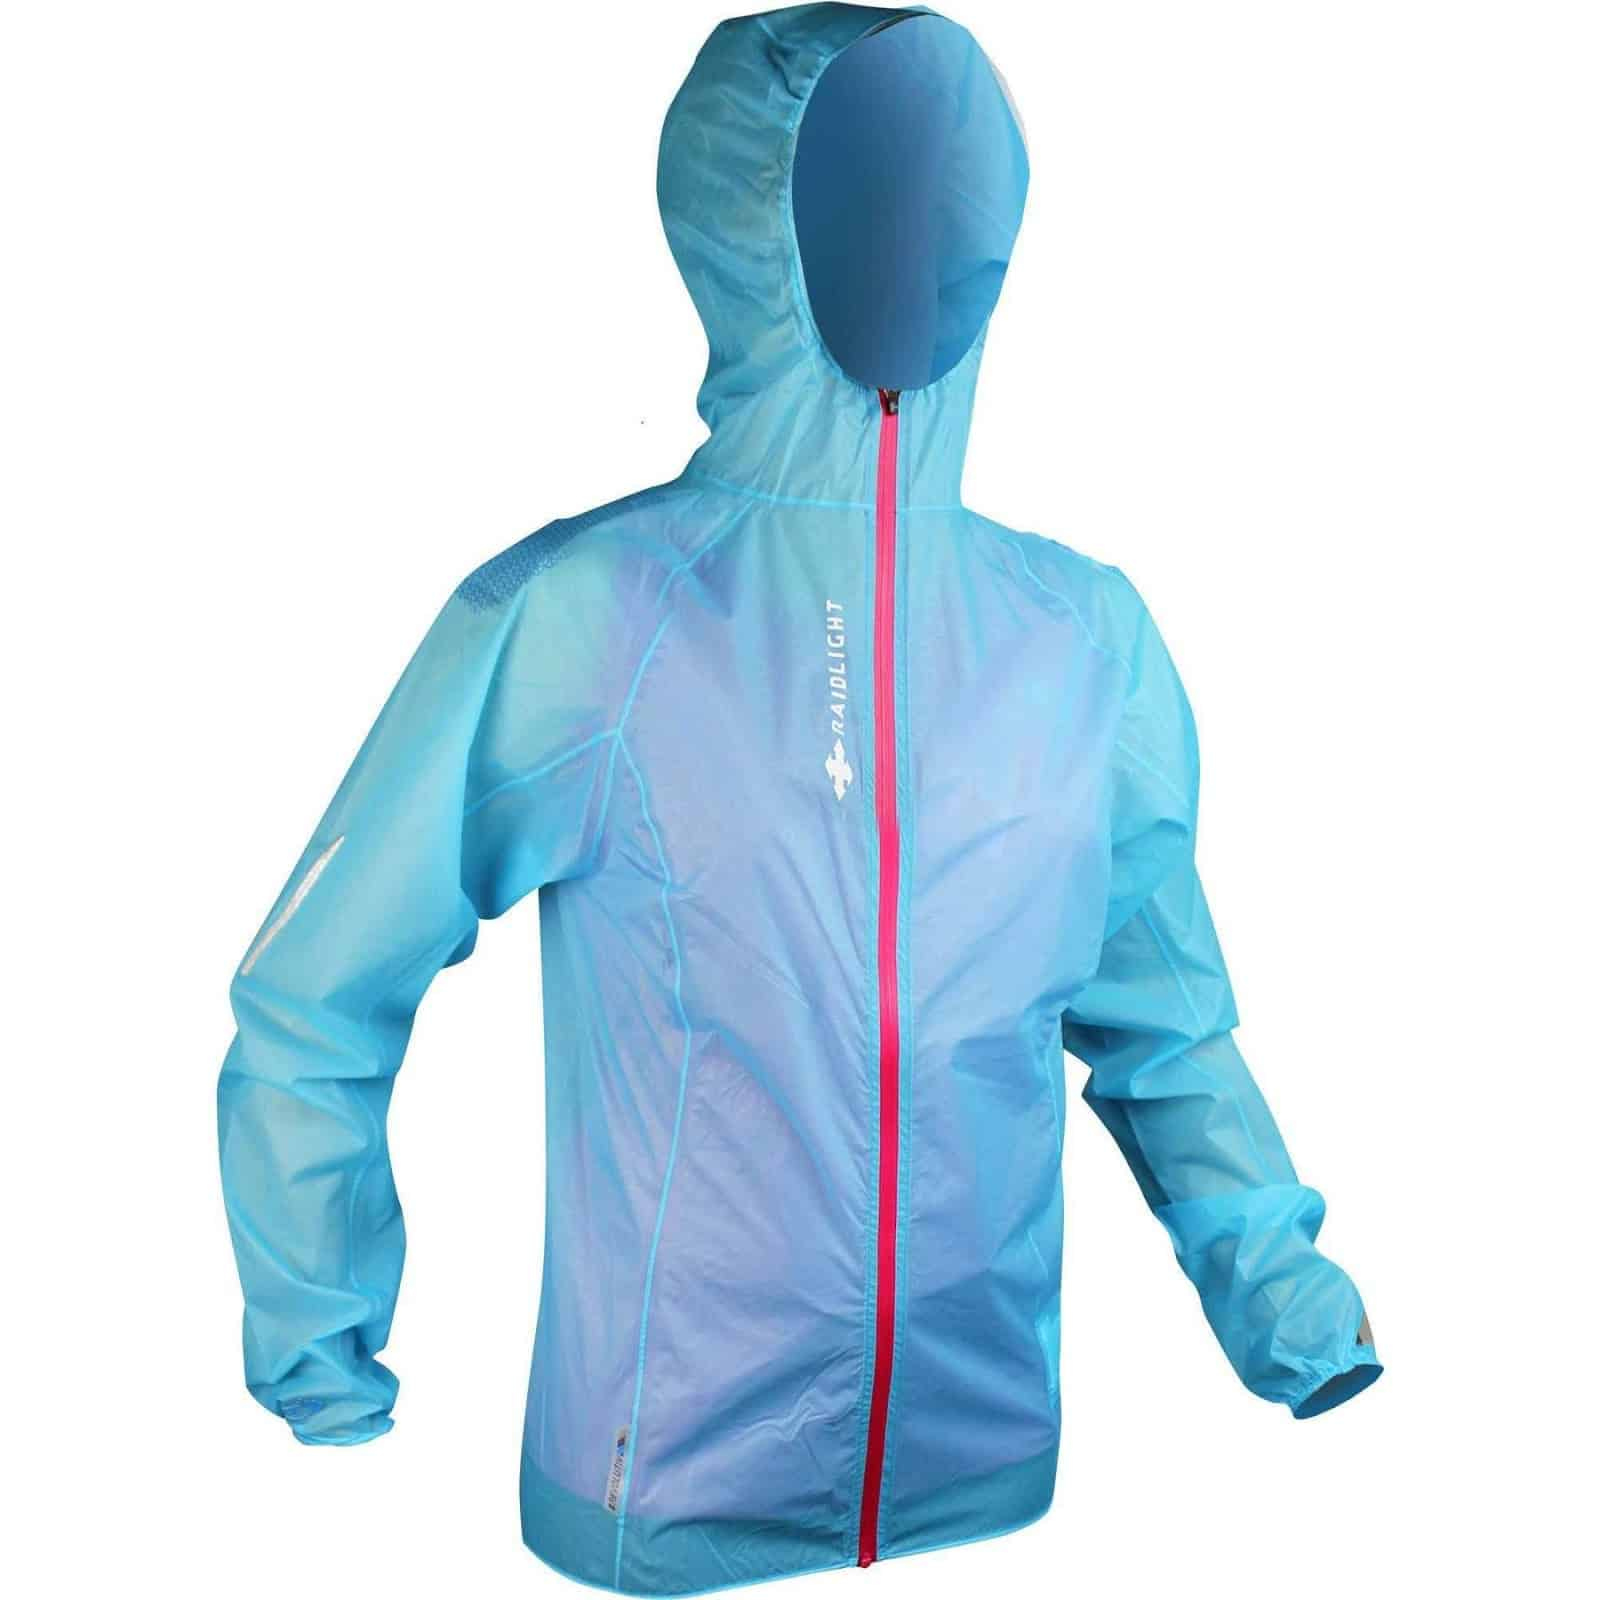 GLHWJ18 755 HYPERLIGHT MP JACKET W 01 detail 1800x1800